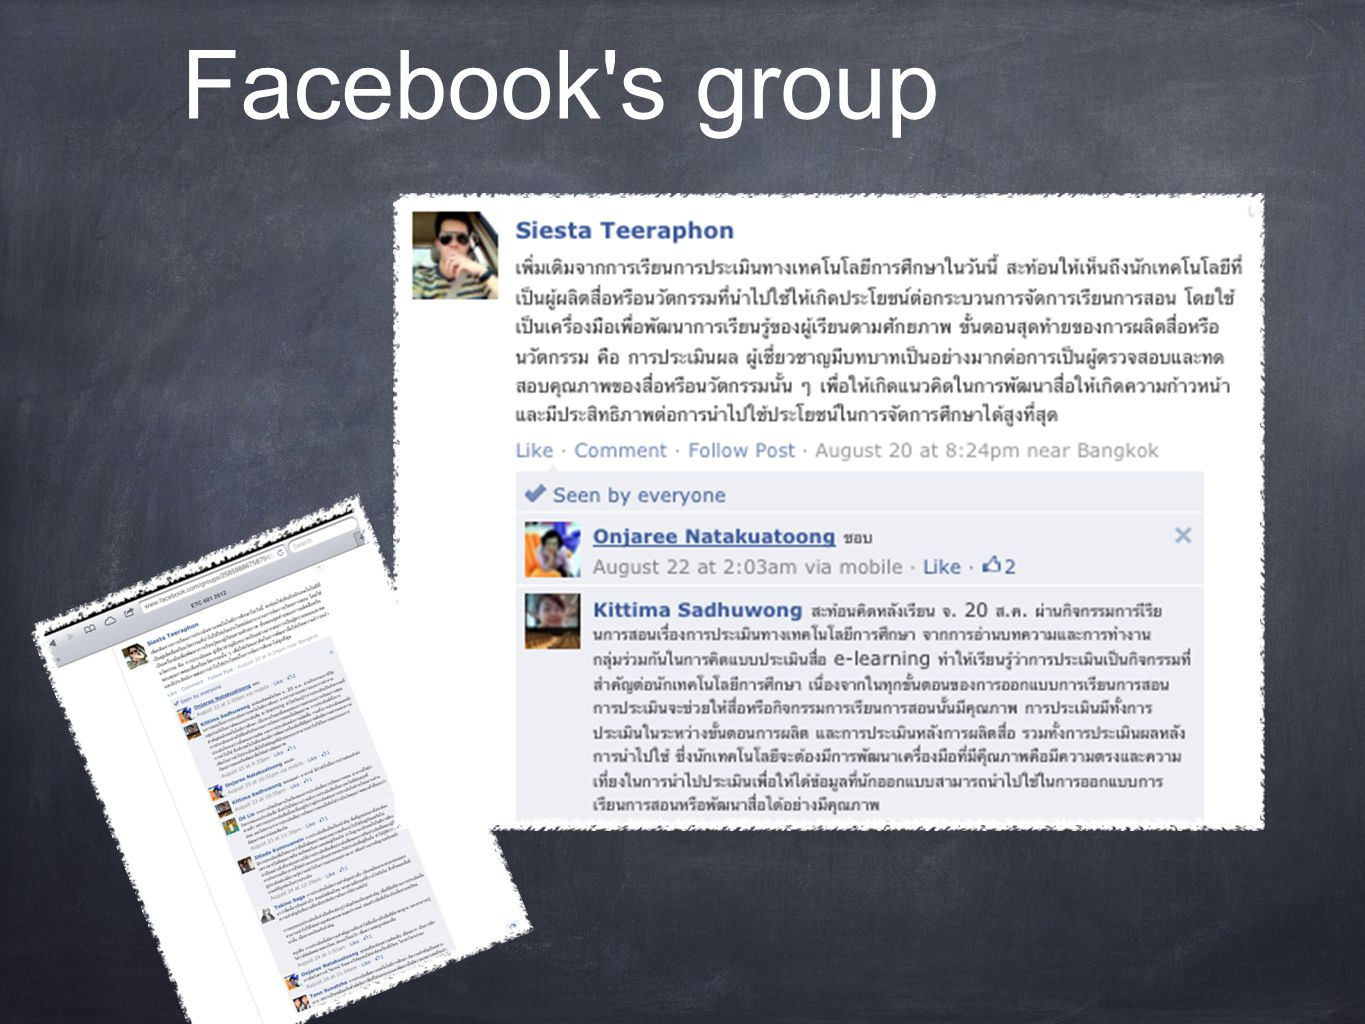 Facebook's group